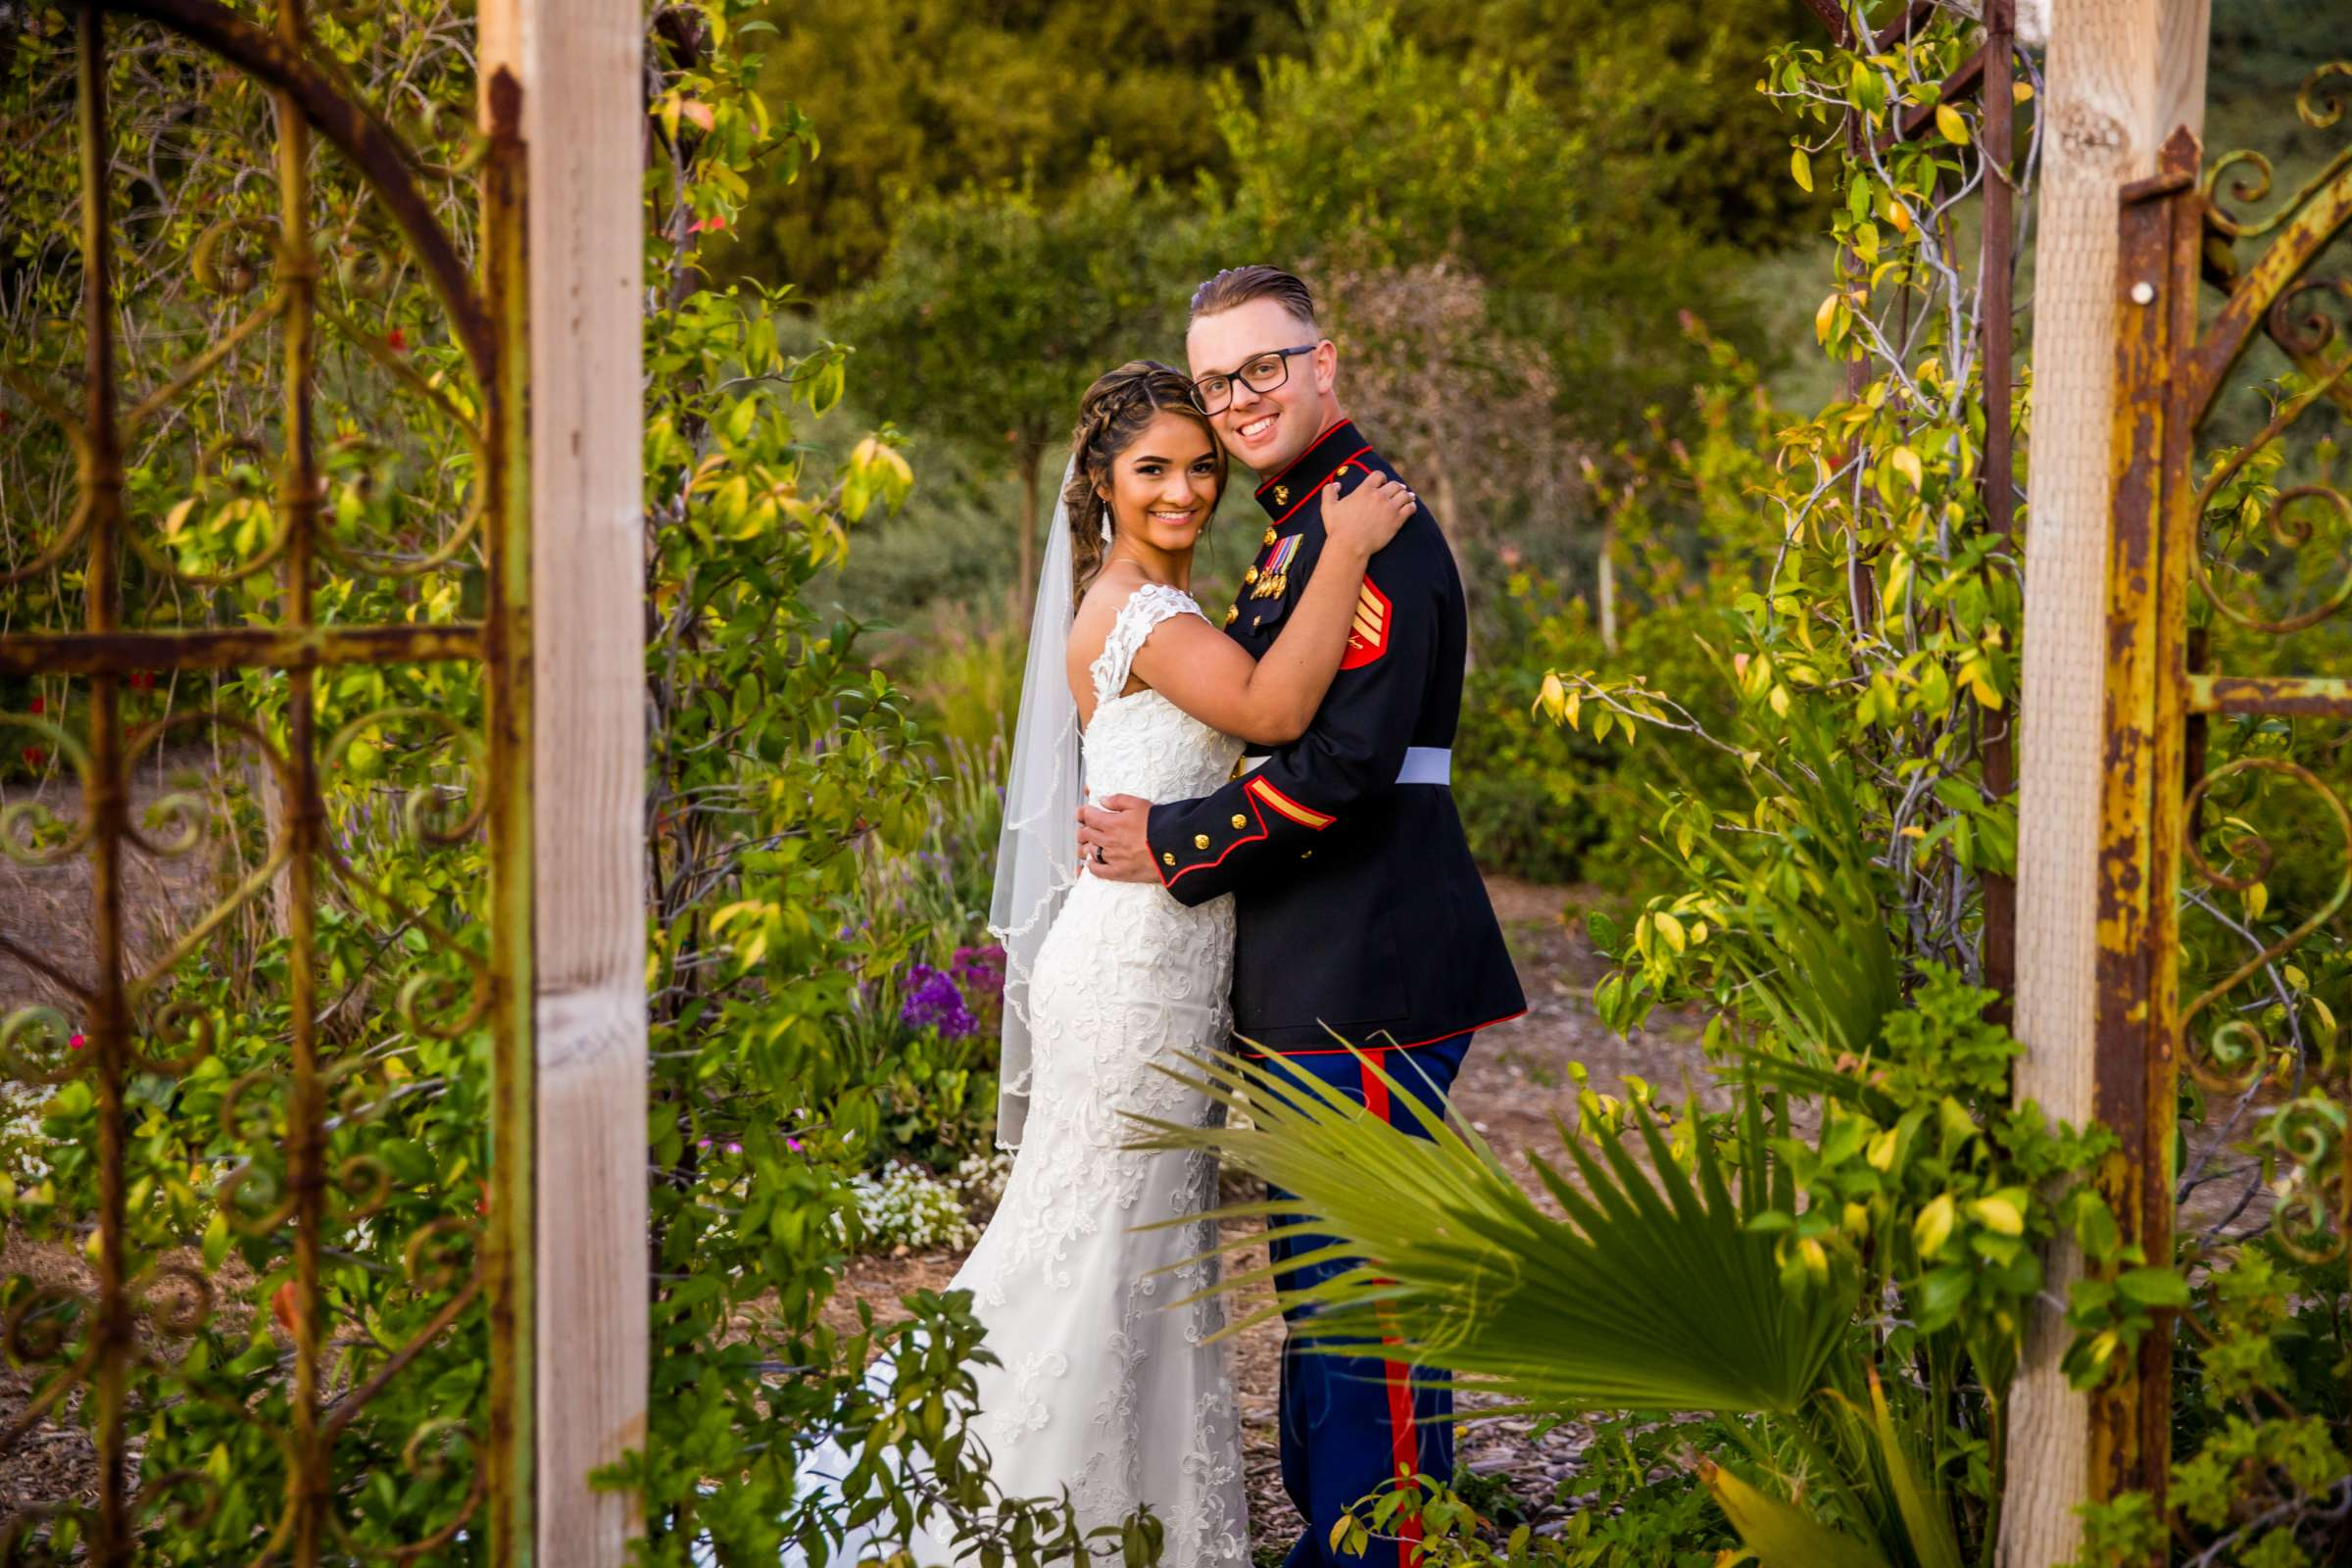 Ethereal Gardens Wedding, Danielle and Ben Wedding Photo #9 by True Photography